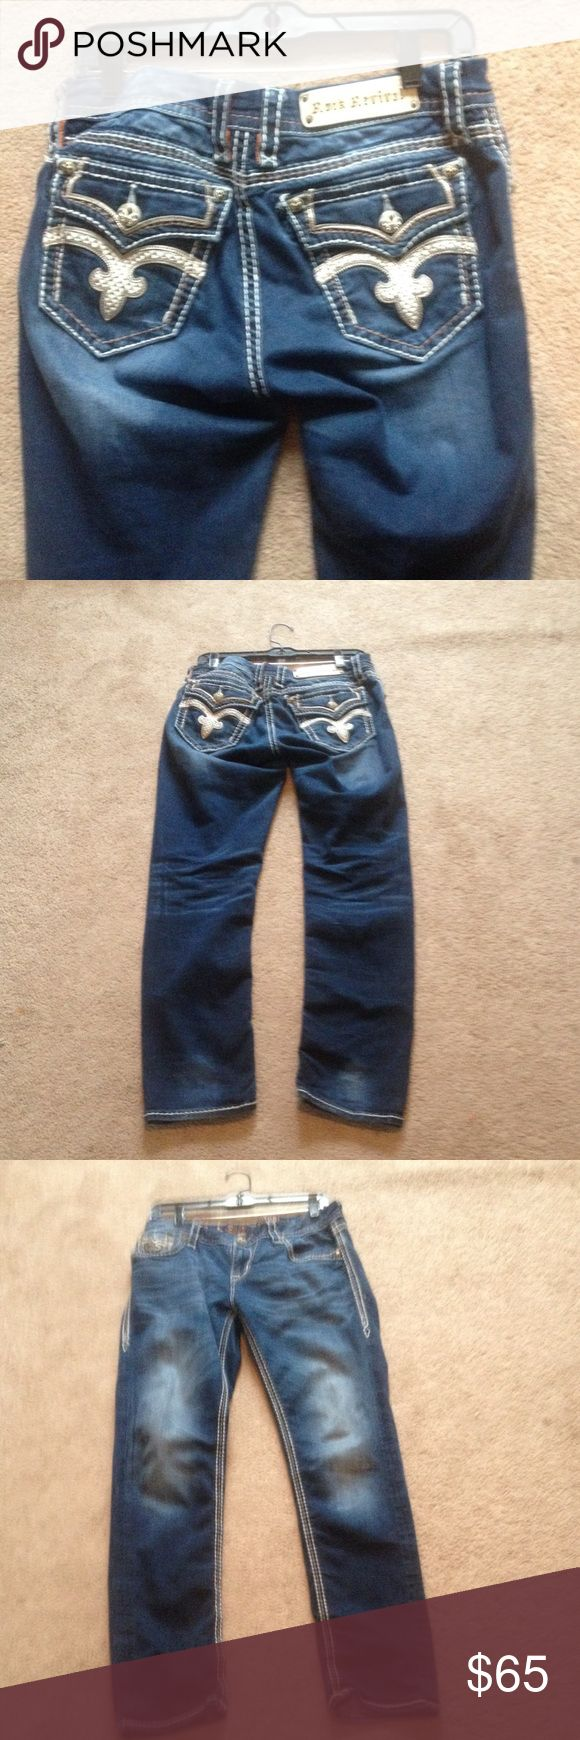 Rock revival jeans Great condition just too big for me would love to trade for a smaller size but if not want to sell Rock Revival Jeans